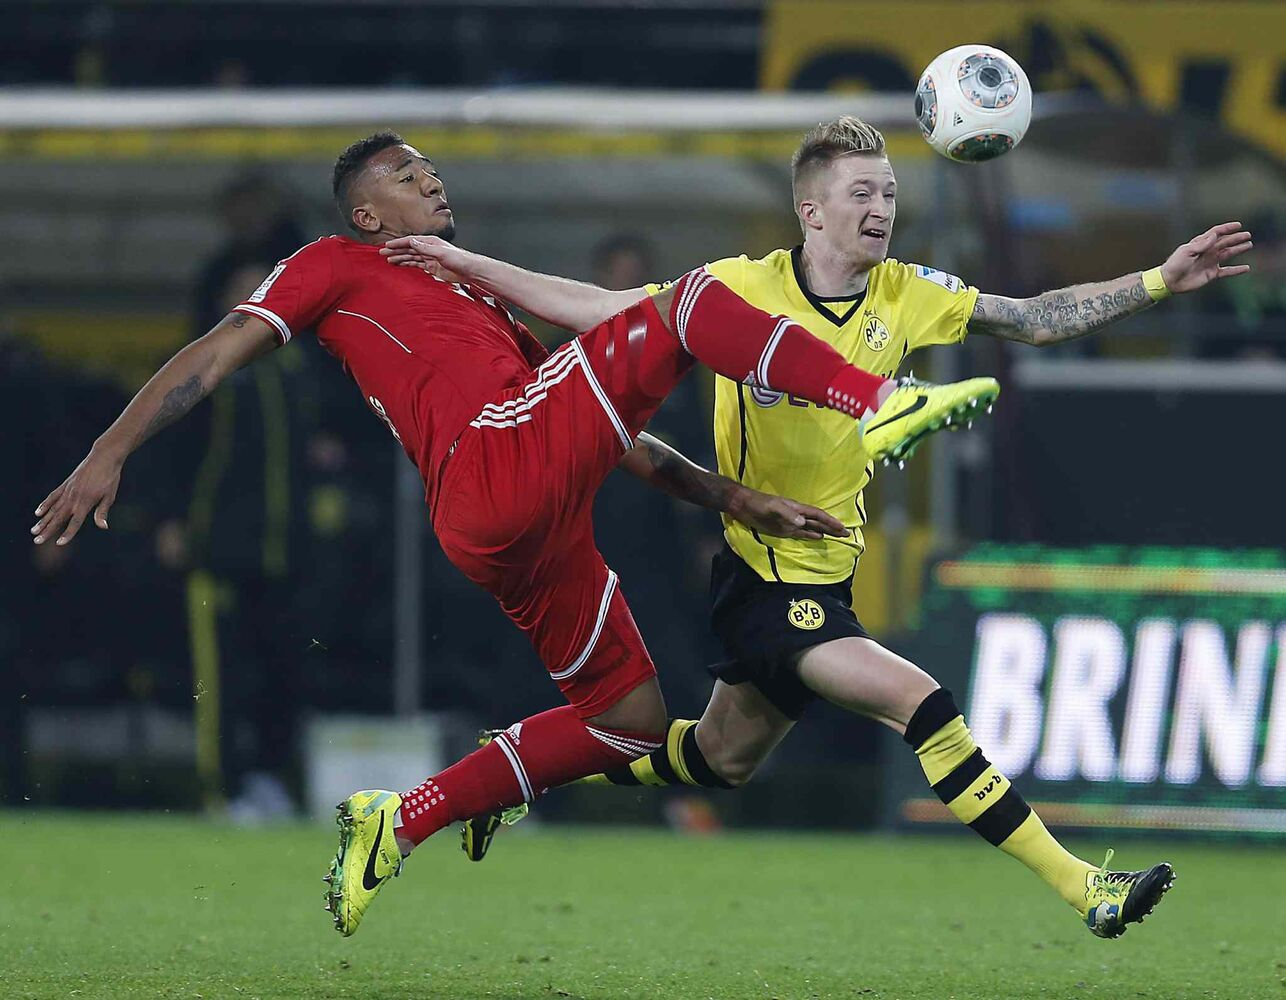 Bayern's Jerome Boateng (left) and Dortmund's Marco Reus chase the ball during the German Bundesliga action between BvB Borussia Dortmund and Bayern Munich in Dortmund, Germany on Saturday.